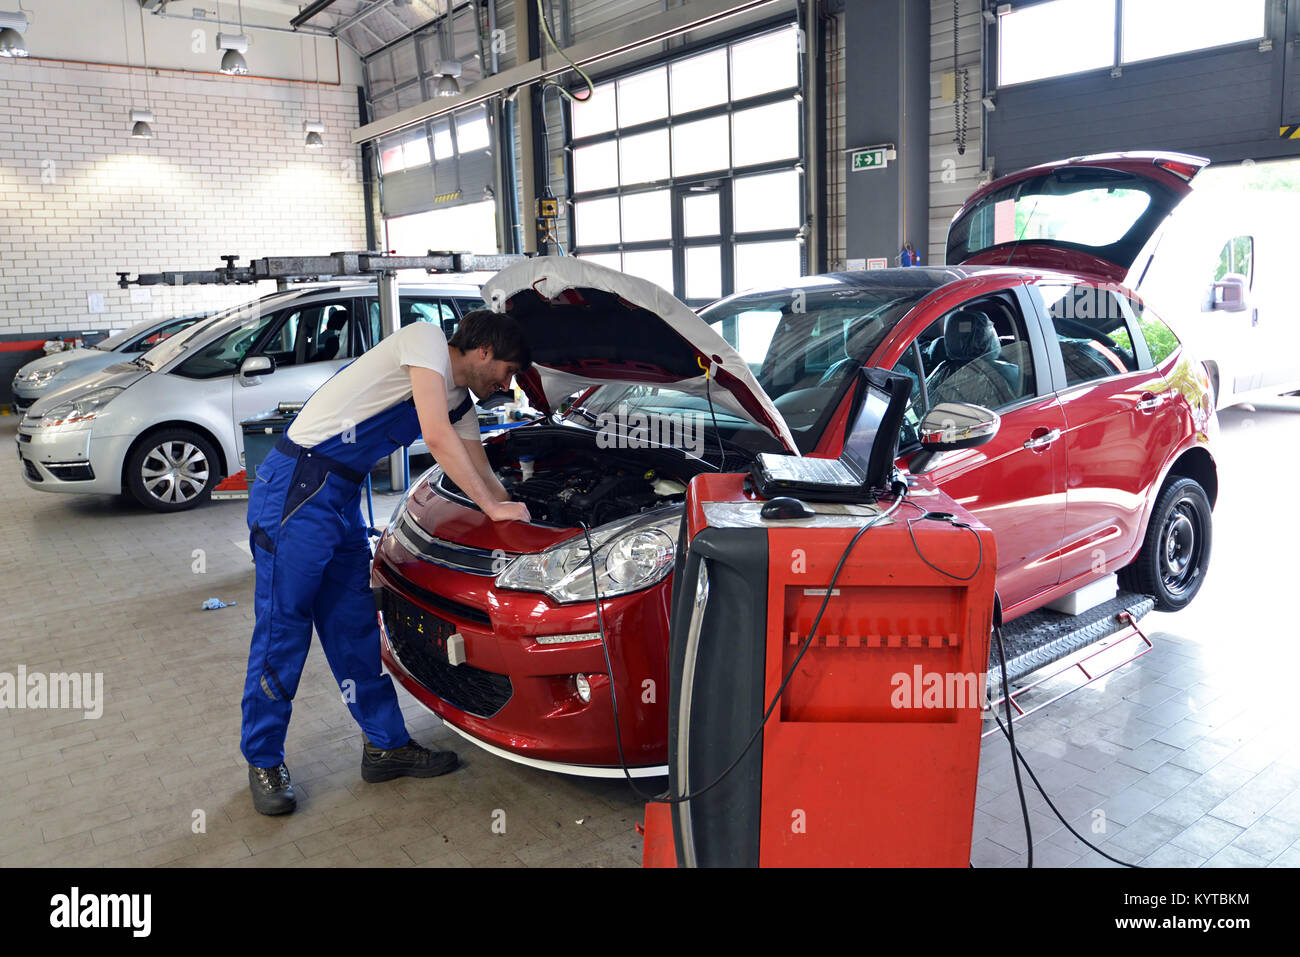 mechanic repairs motor from an automobile with the help of a diagnostic computer - Stock Image